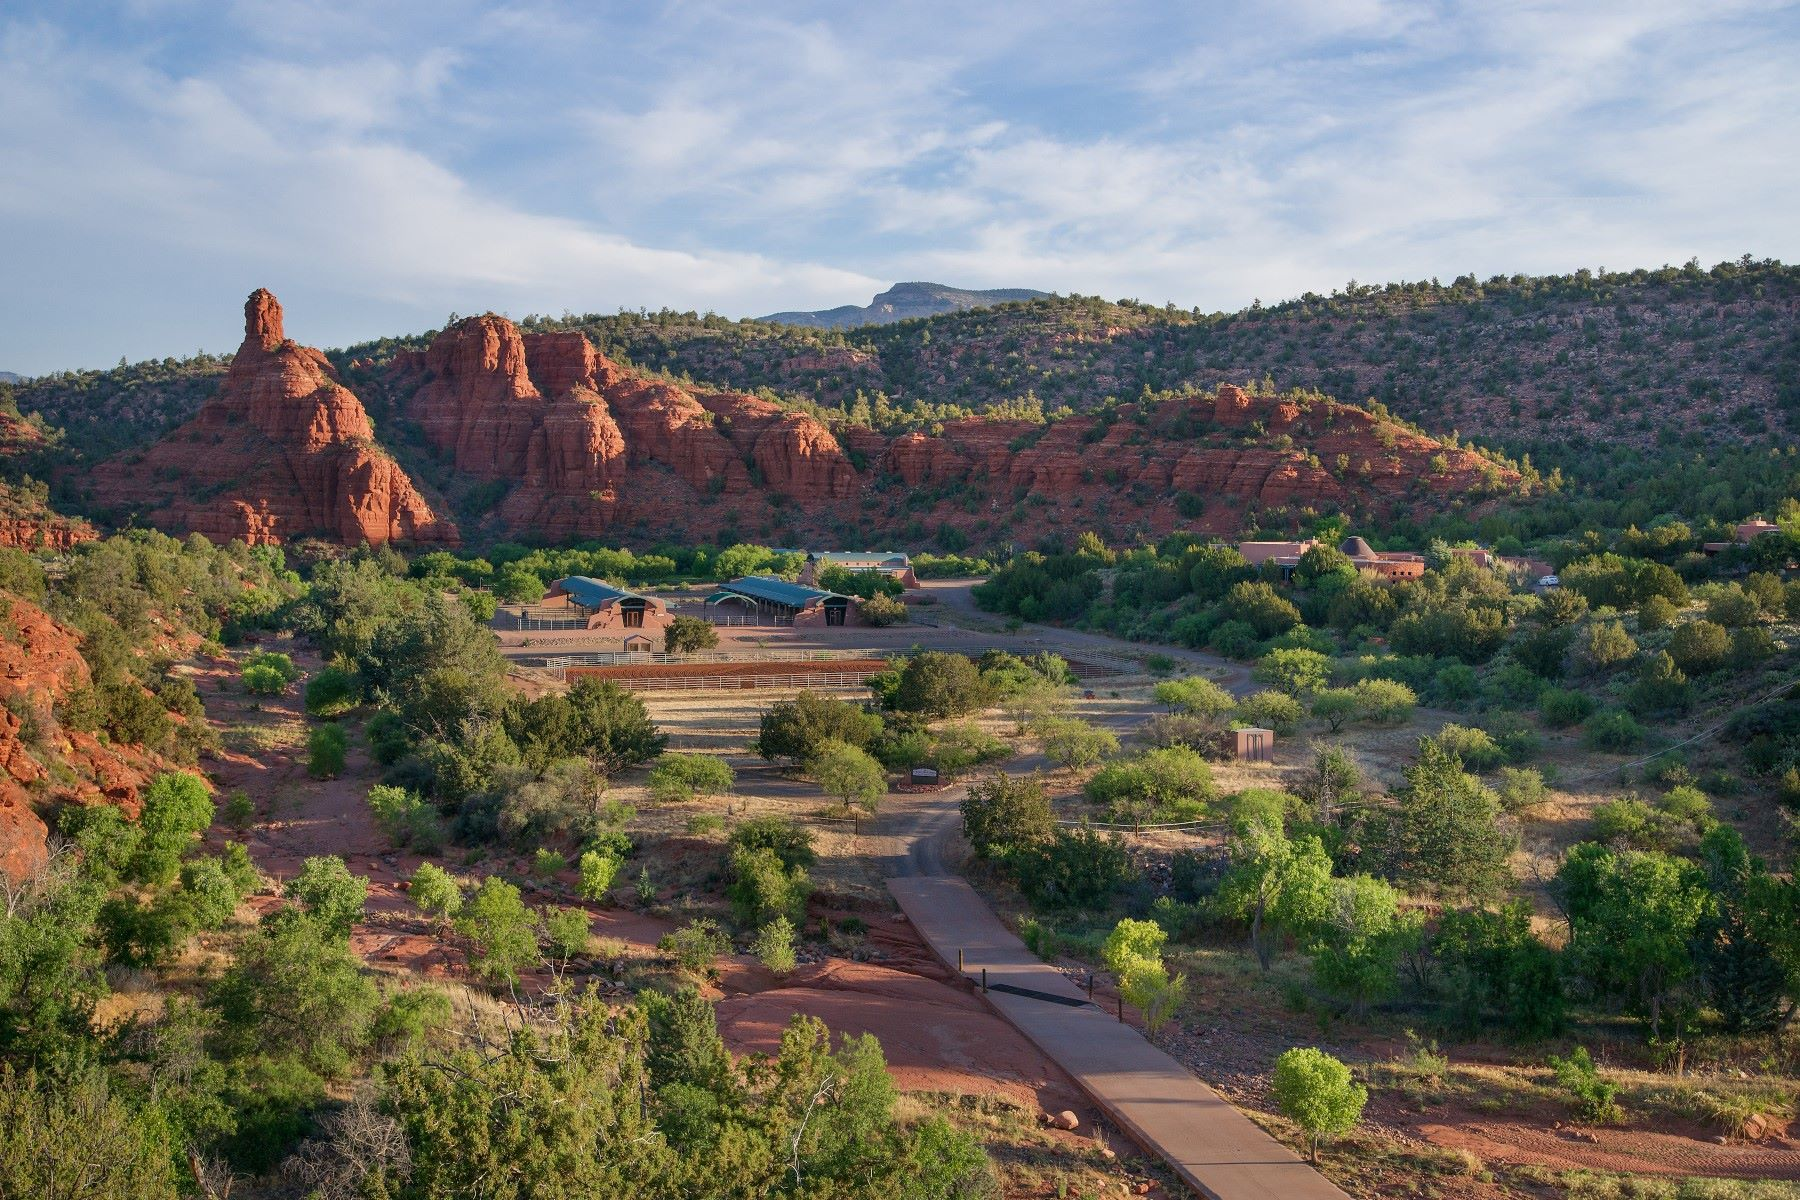 Đất đai vì Bán tại One-of-a-kind property - largest undeveloped privately owned parcels in Sedona 6625 W State Route 89A -- 0 Sedona, Arizona, 86336 Hoa Kỳ